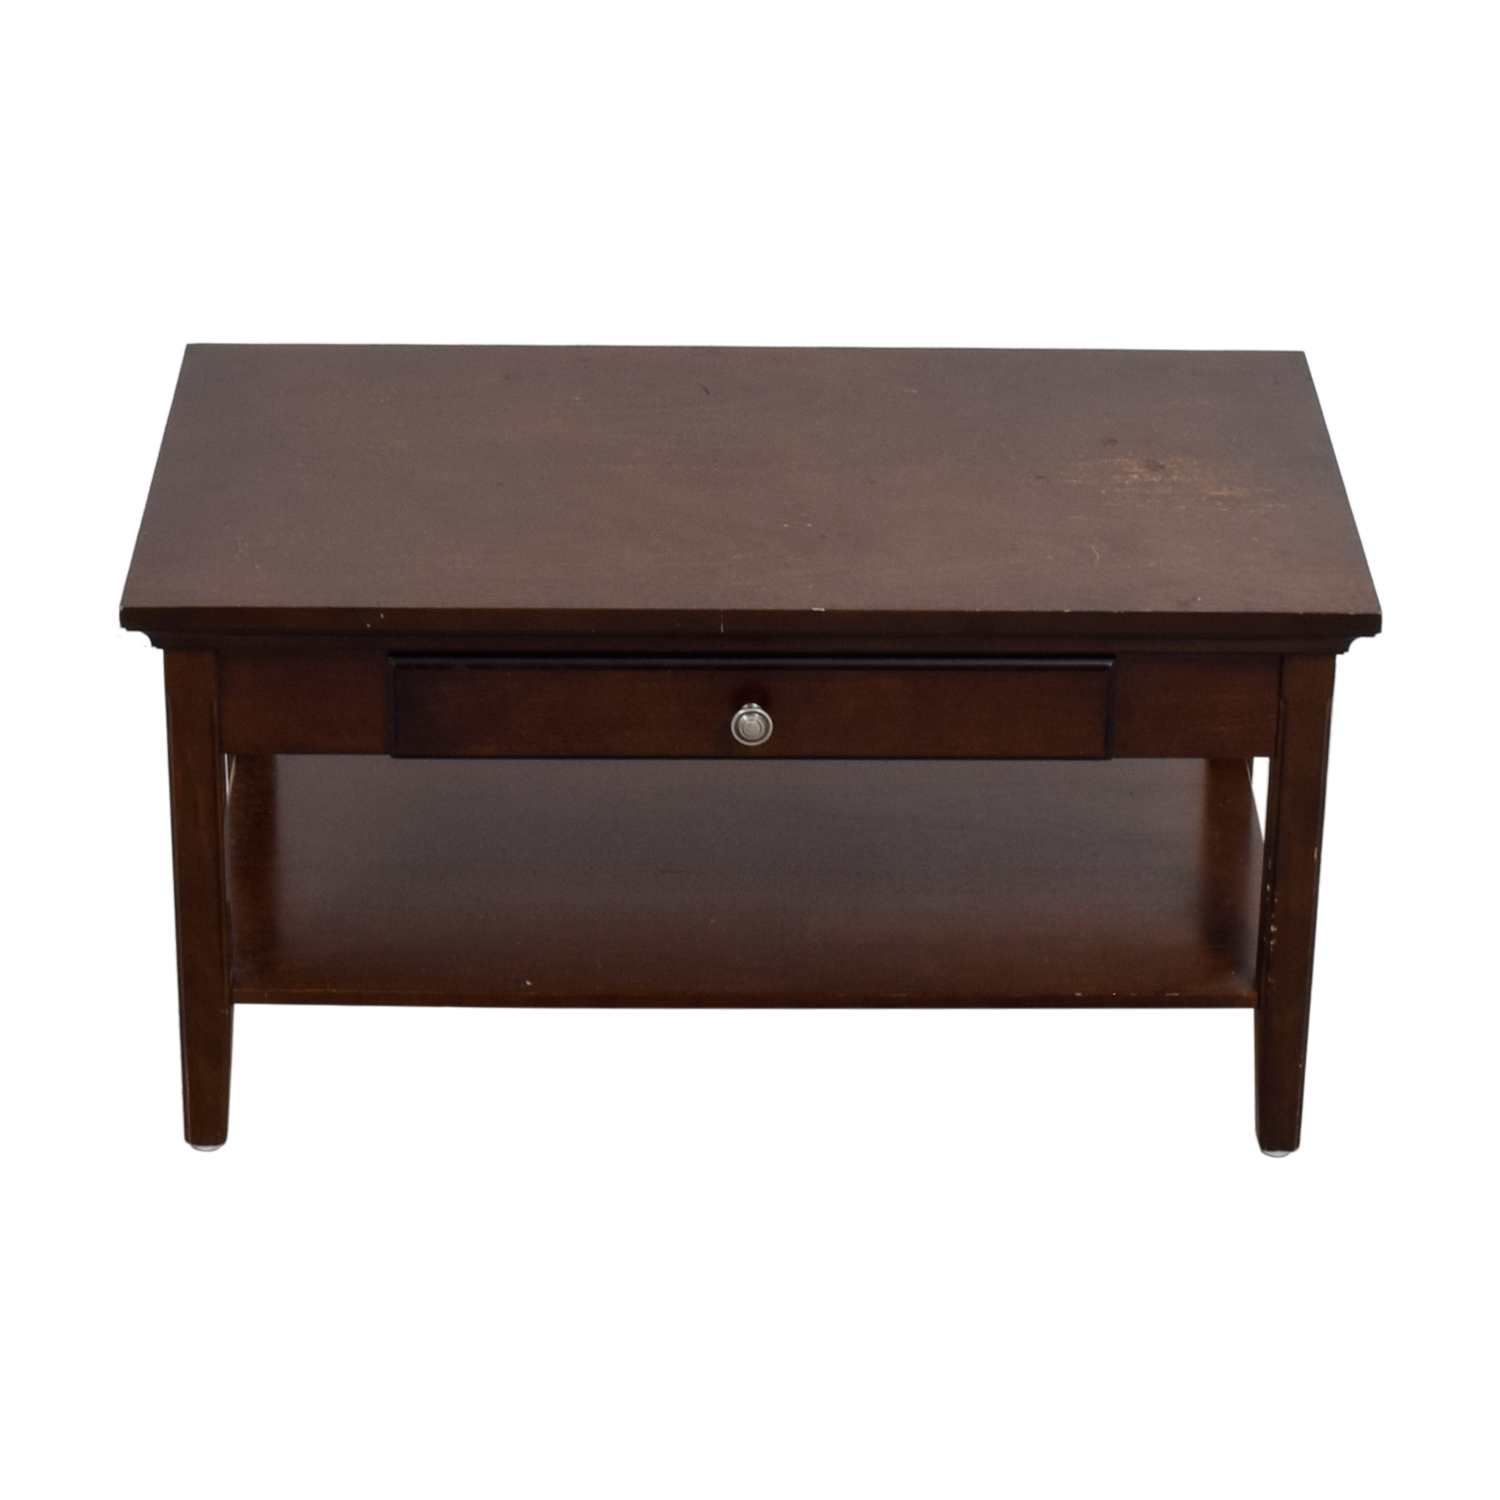 Wooden Classic Coffee Table Coffee Tables